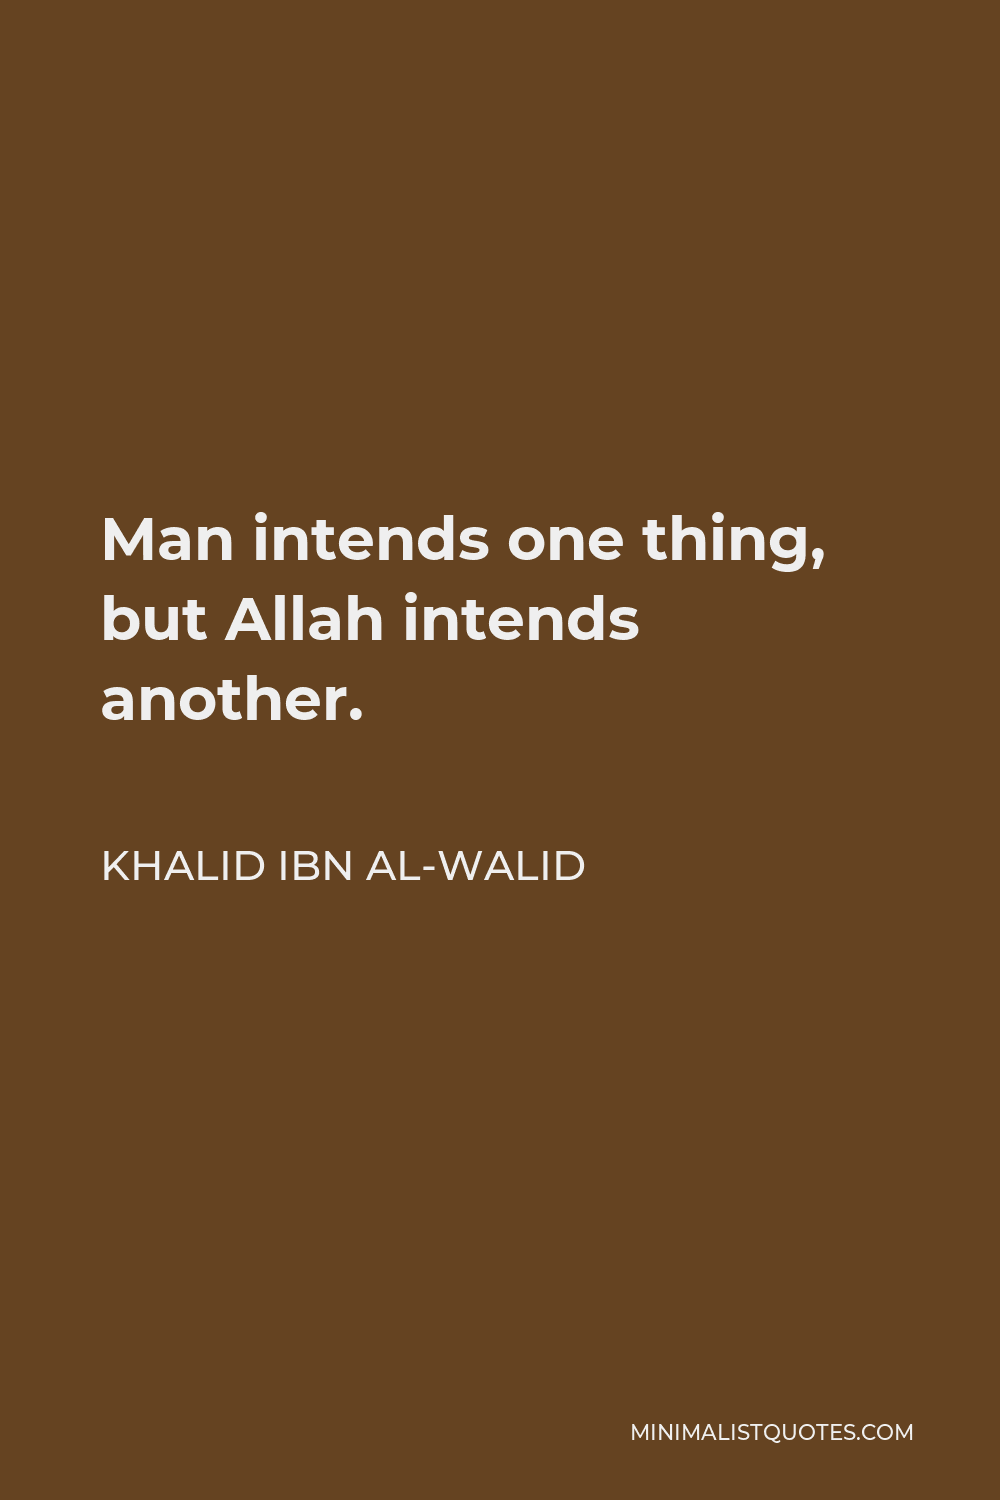 Khalid ibn al-Walid Quote - Man intends one thing, but Allah intends another.